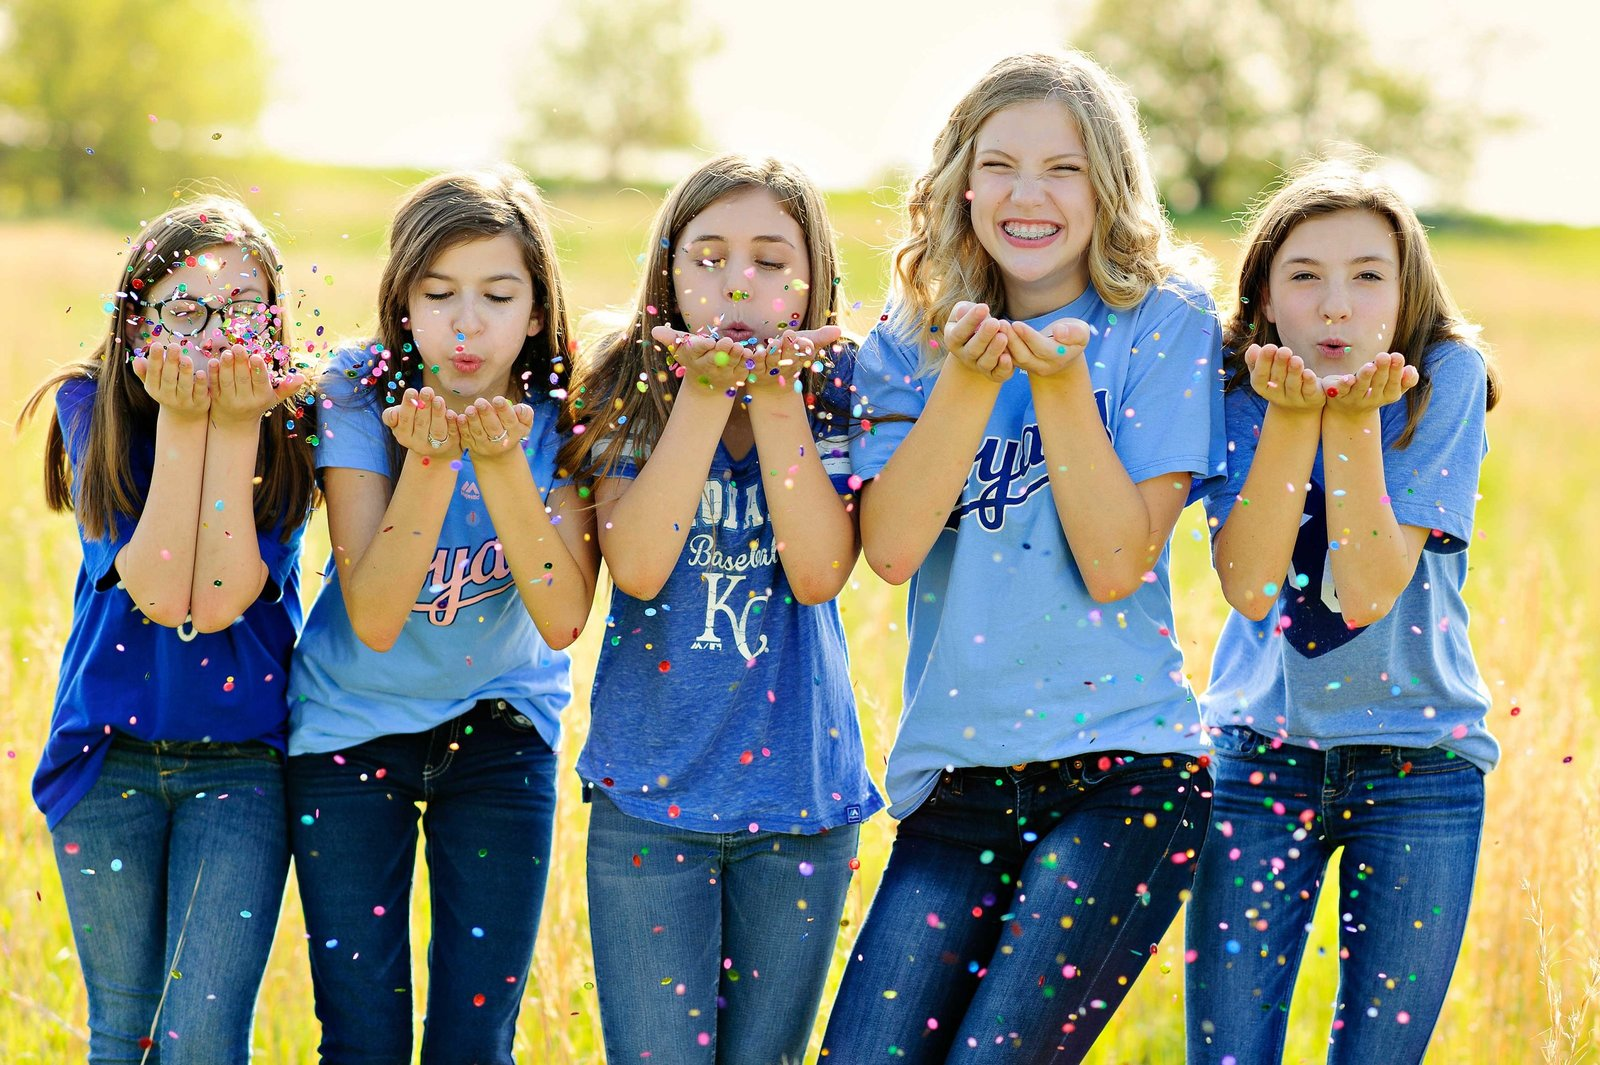 fun-glitter-teen-portraits-kc